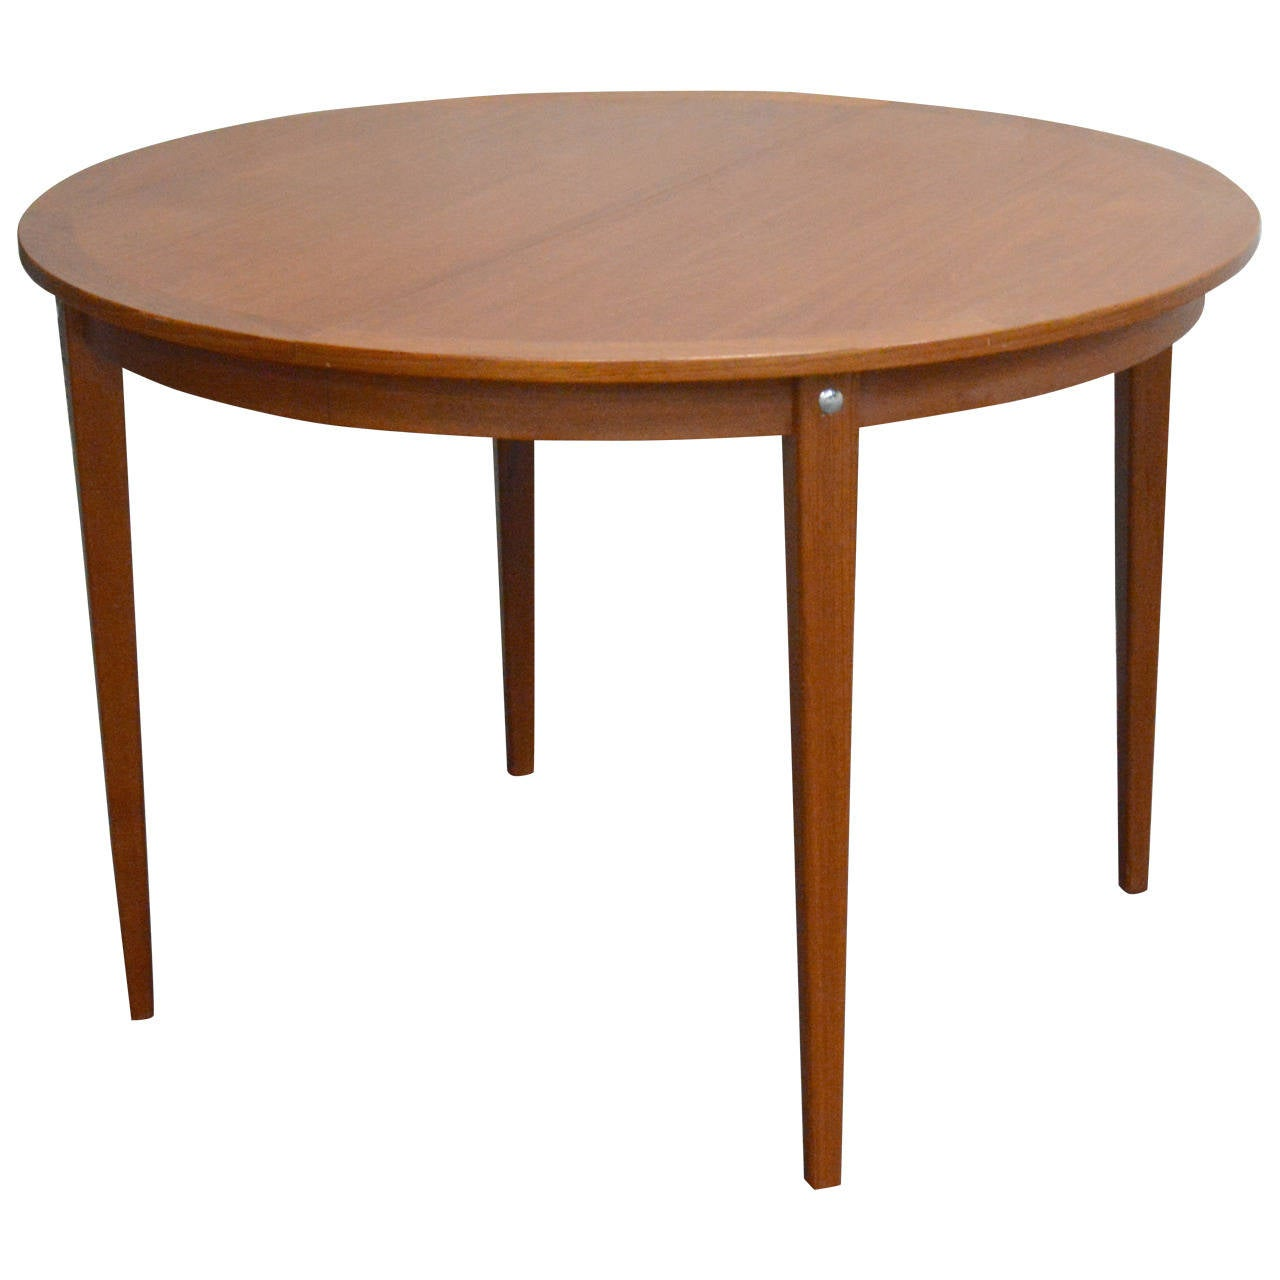 Mid-Century Modern Round Swedish Teak Dining Table For Sale at 1stdibs